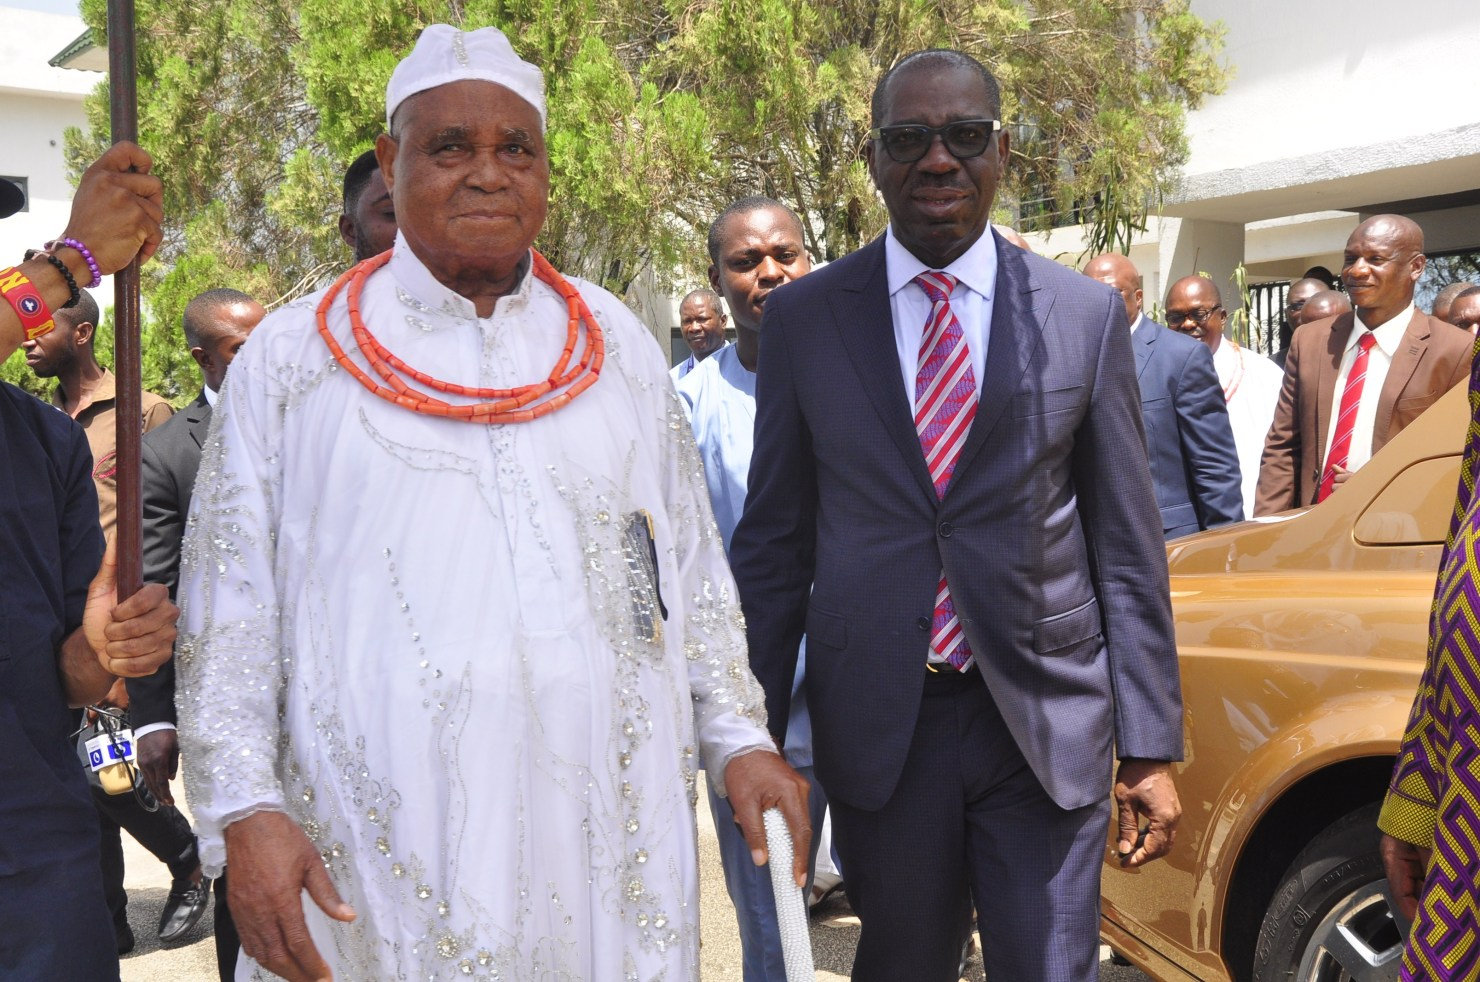 Edo State Governor, Mr Godwin Obaseki has received the endorsement of a prominent opposition party leader in the state, Chief Dr Gabriel Osawaru Igbinedion, who is also a Chieftain of the Peoples Democratic Party (PDP).